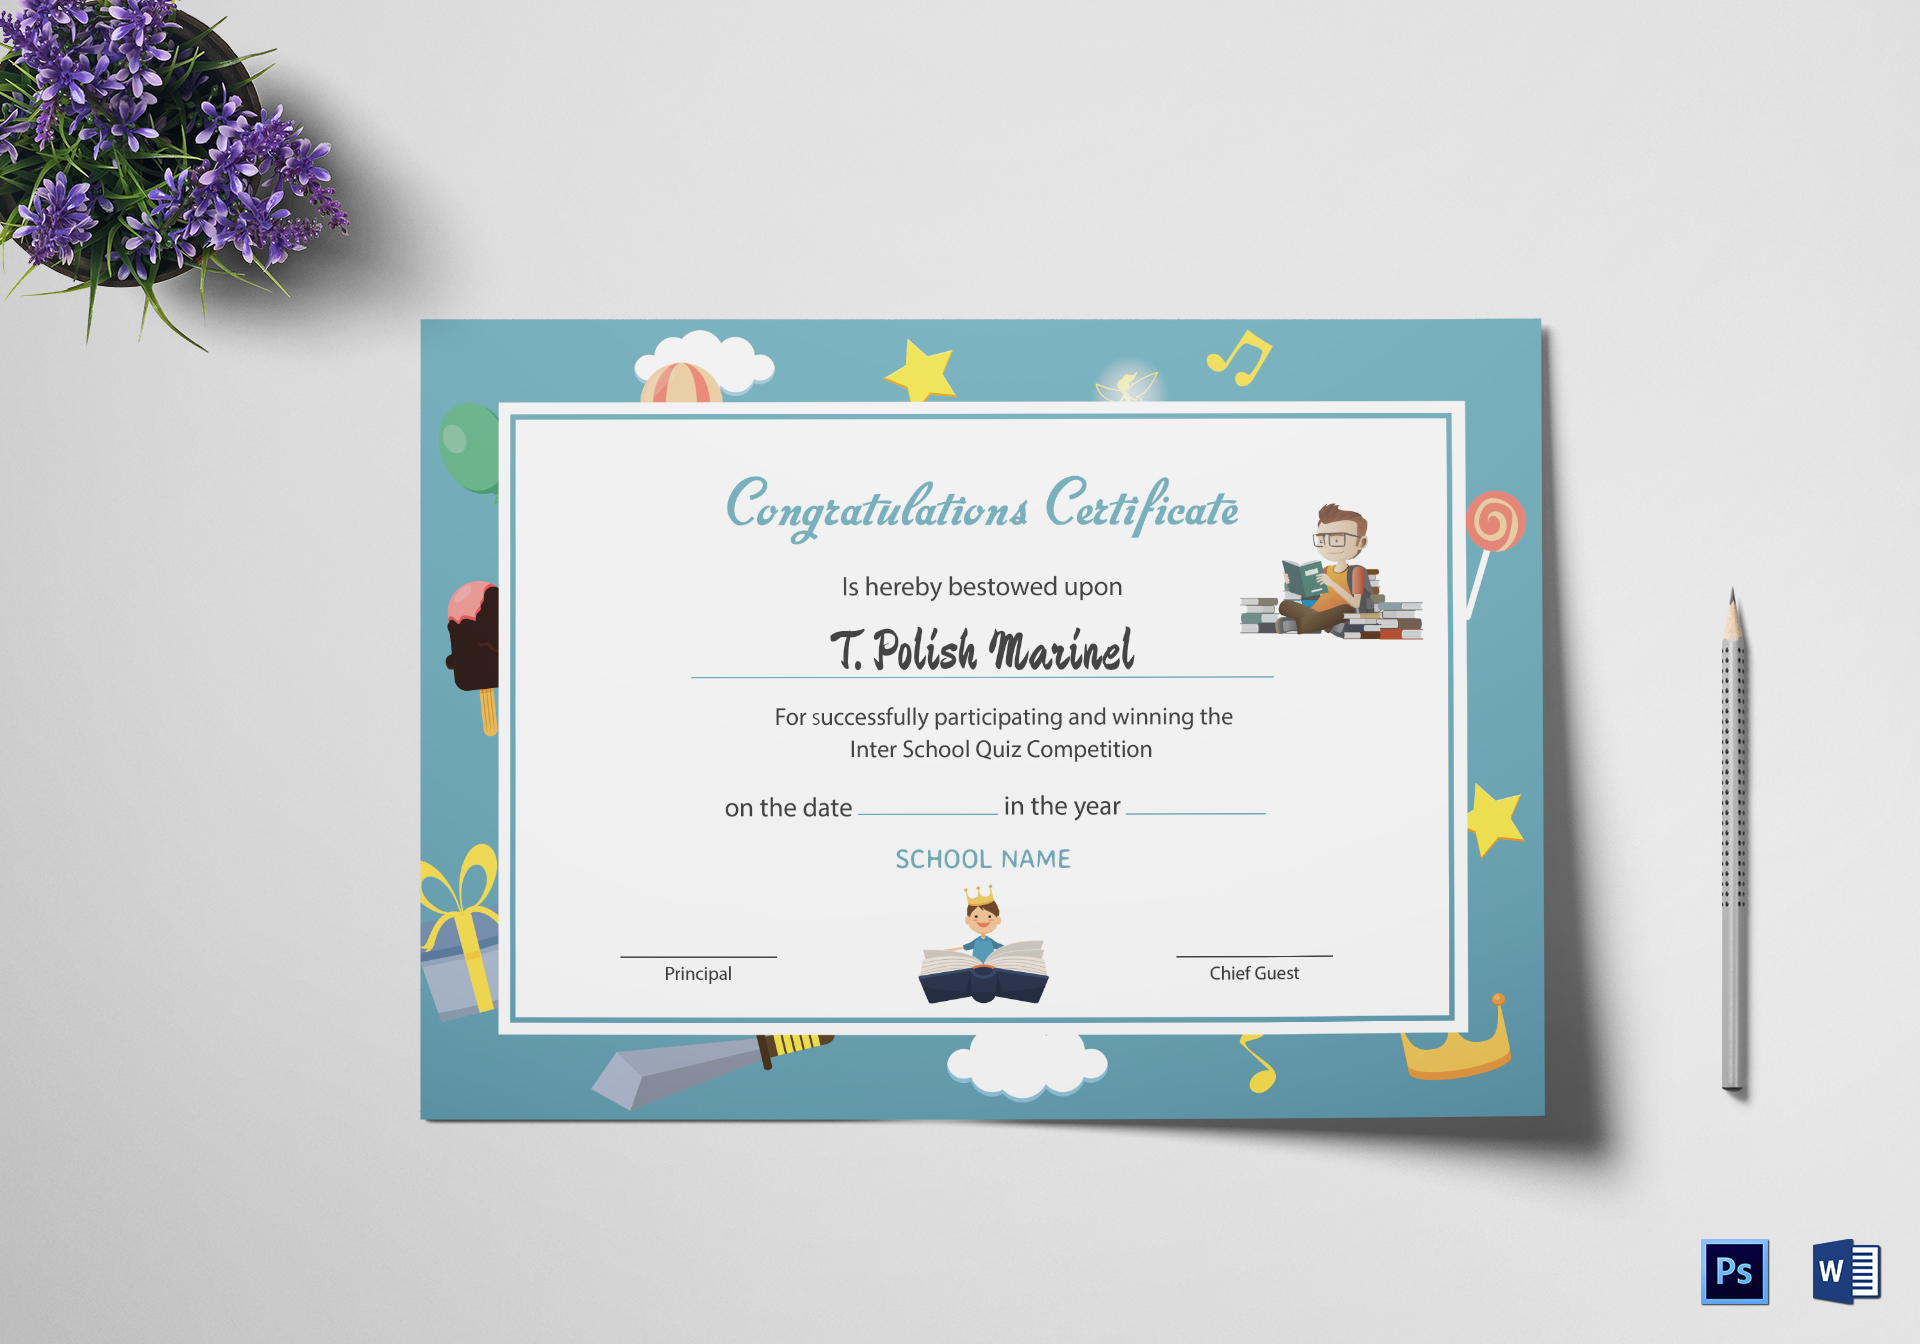 Reading Award Congratulations Certificate Design Template in PSD, Word